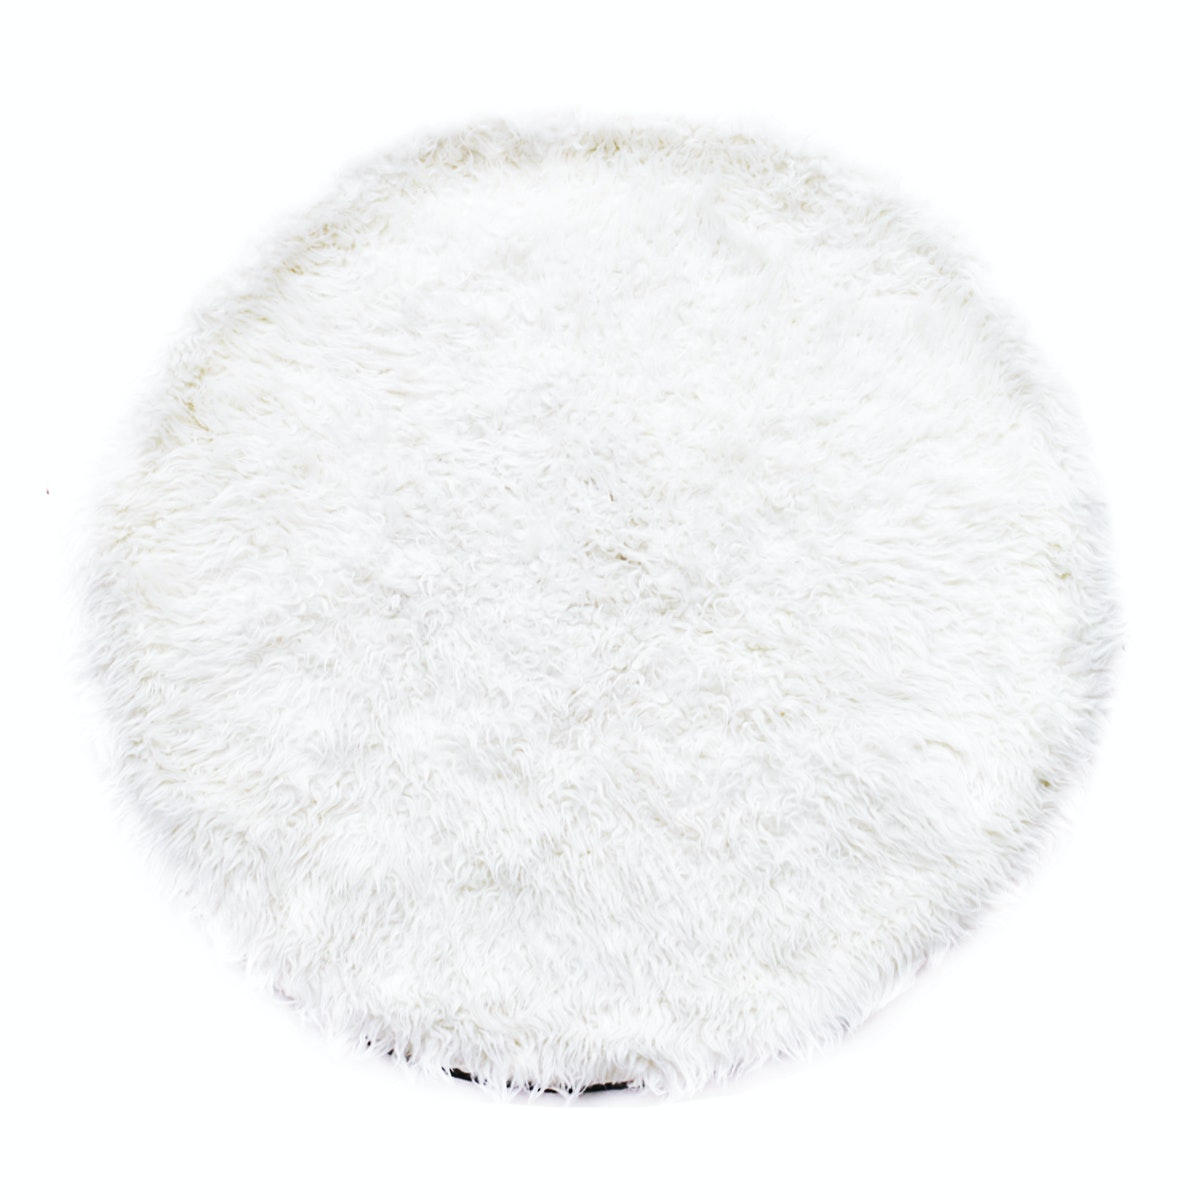 Glerry Home Decor Round White Fur Rug 100cm